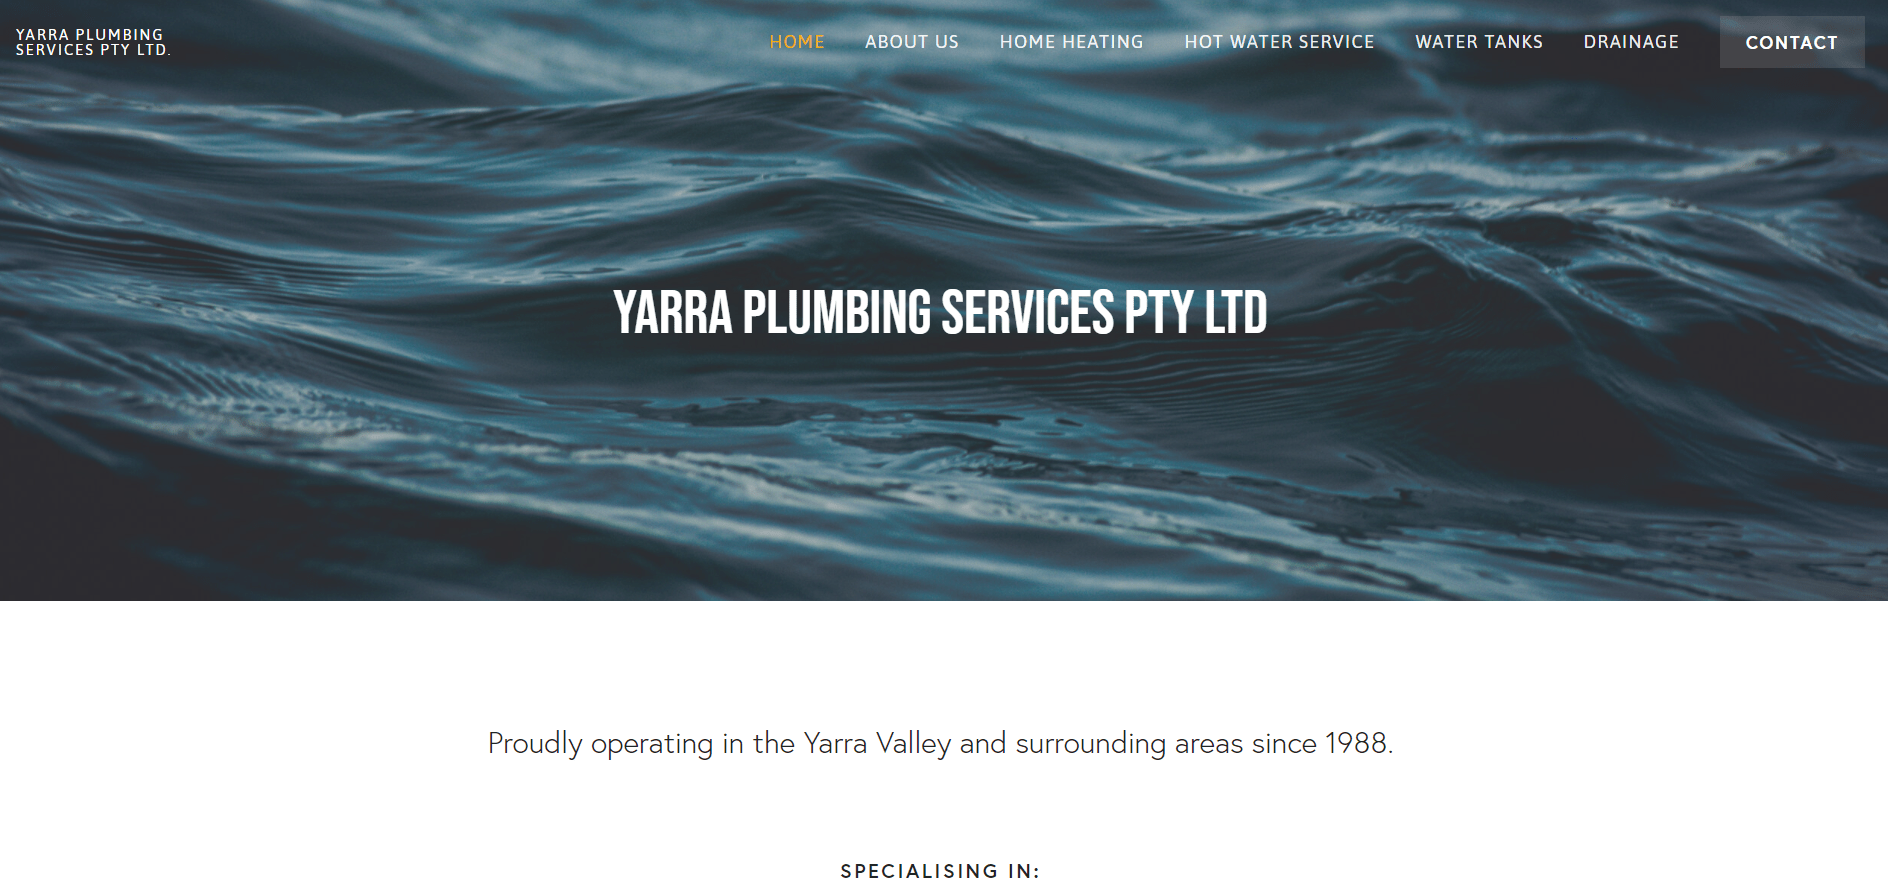 Yarra Plumbing Services Pty Ltd